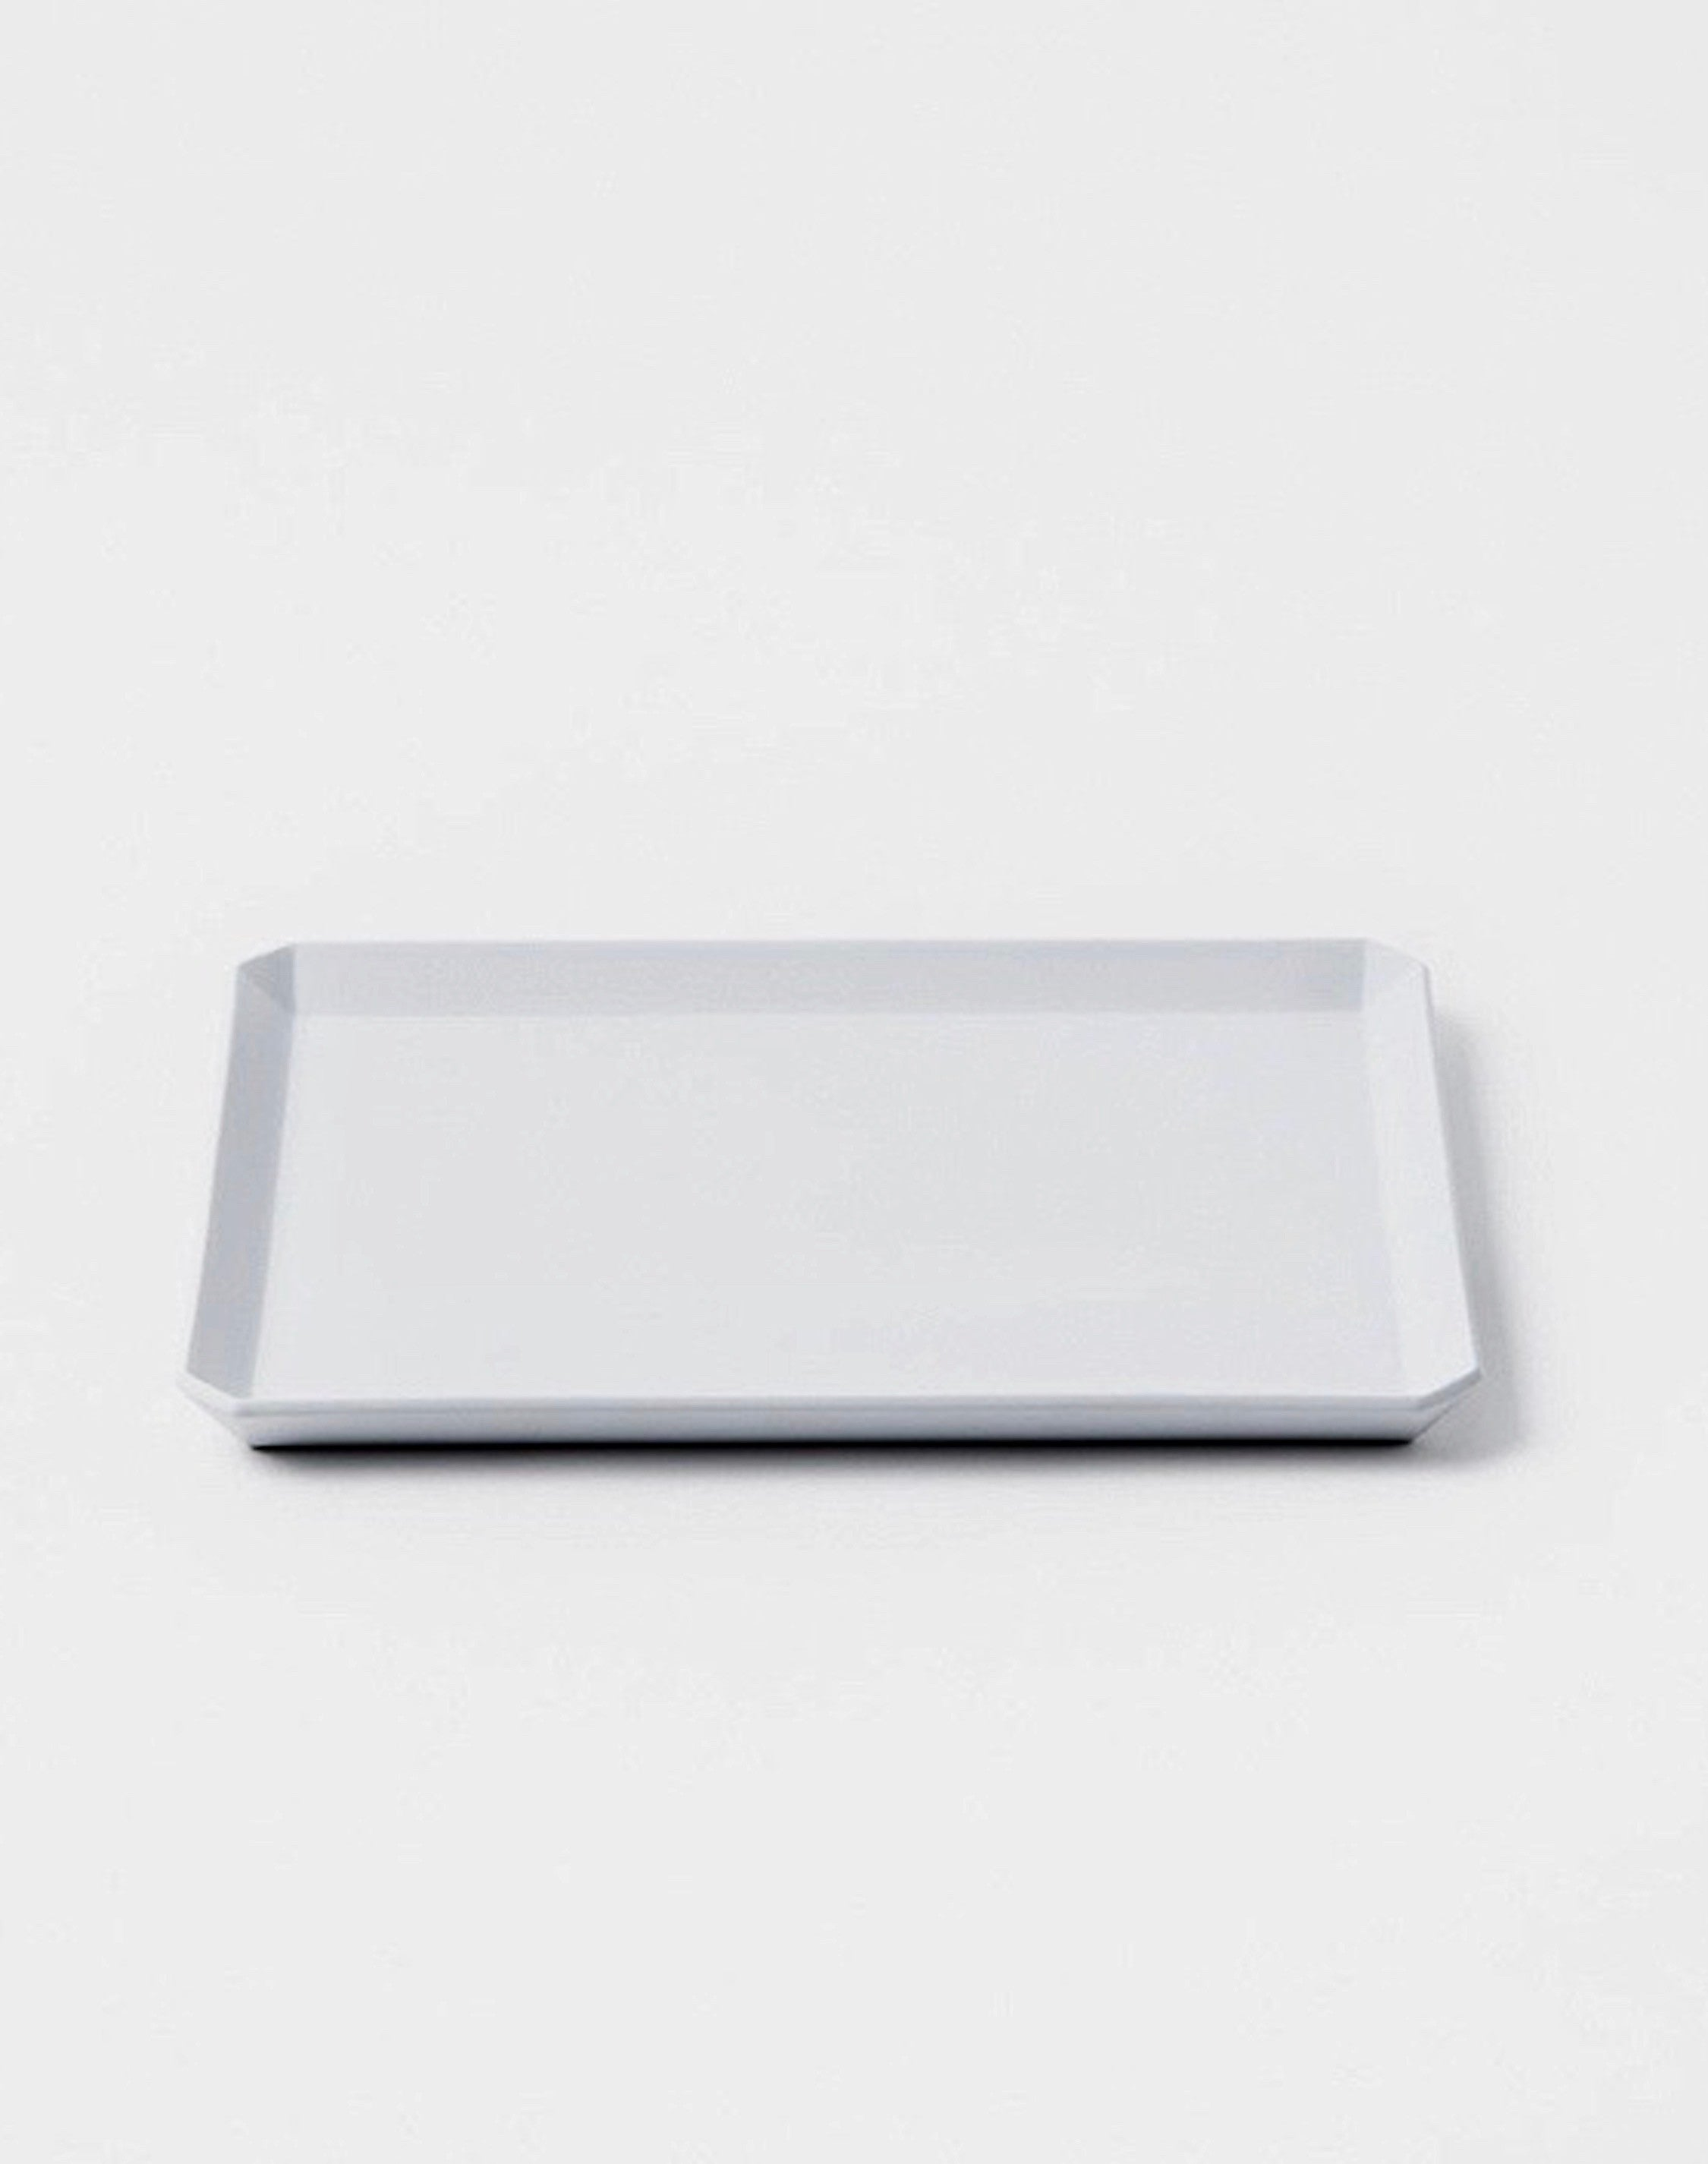 TY Square Plate 235 Gray